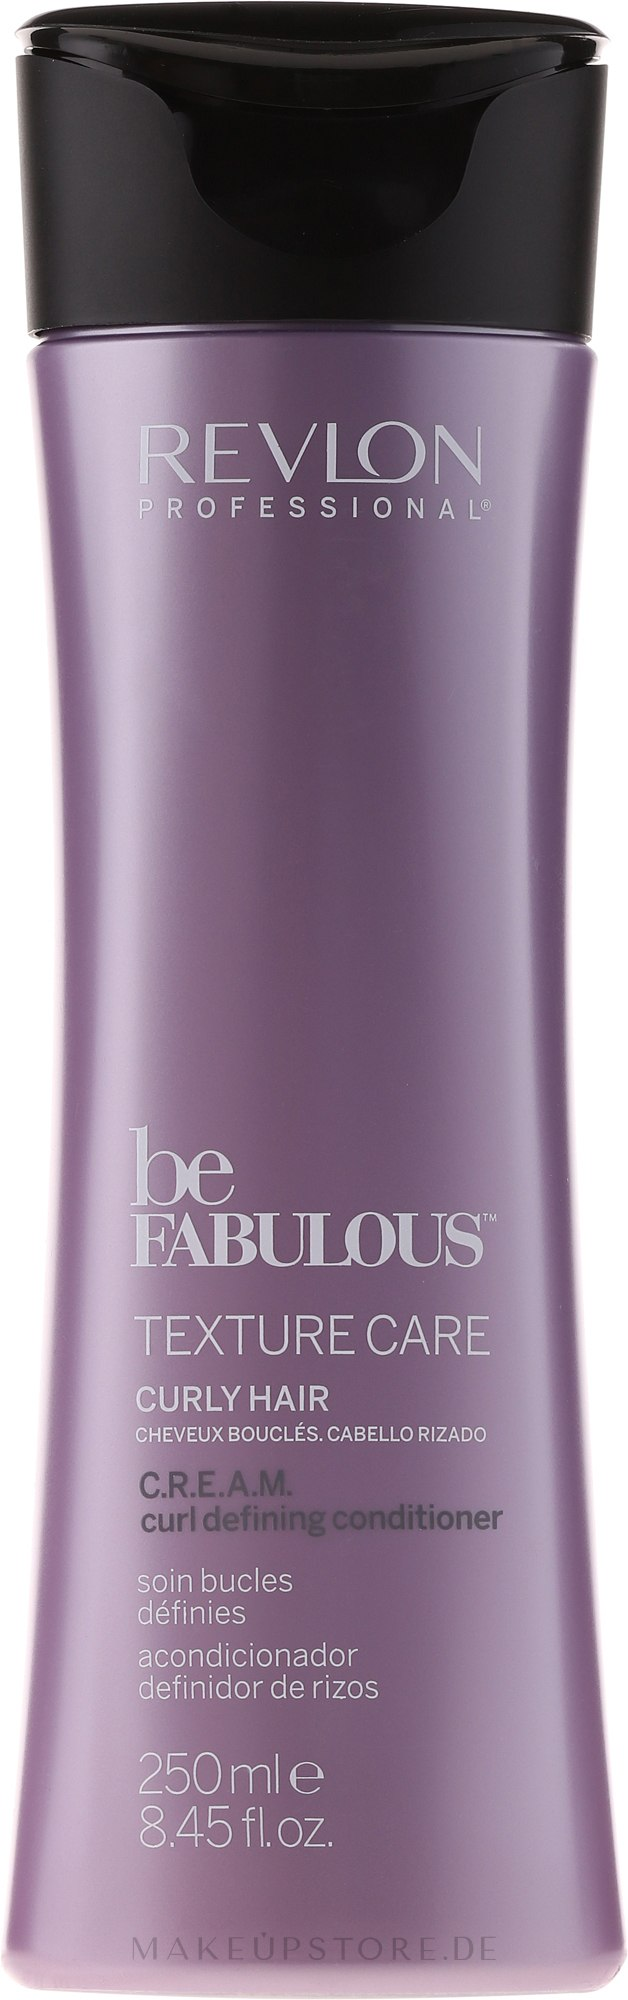 Haarspülung für lockiges Haar - Revlon Professional Be Fabulous Care Curly Conditioner — Bild N6